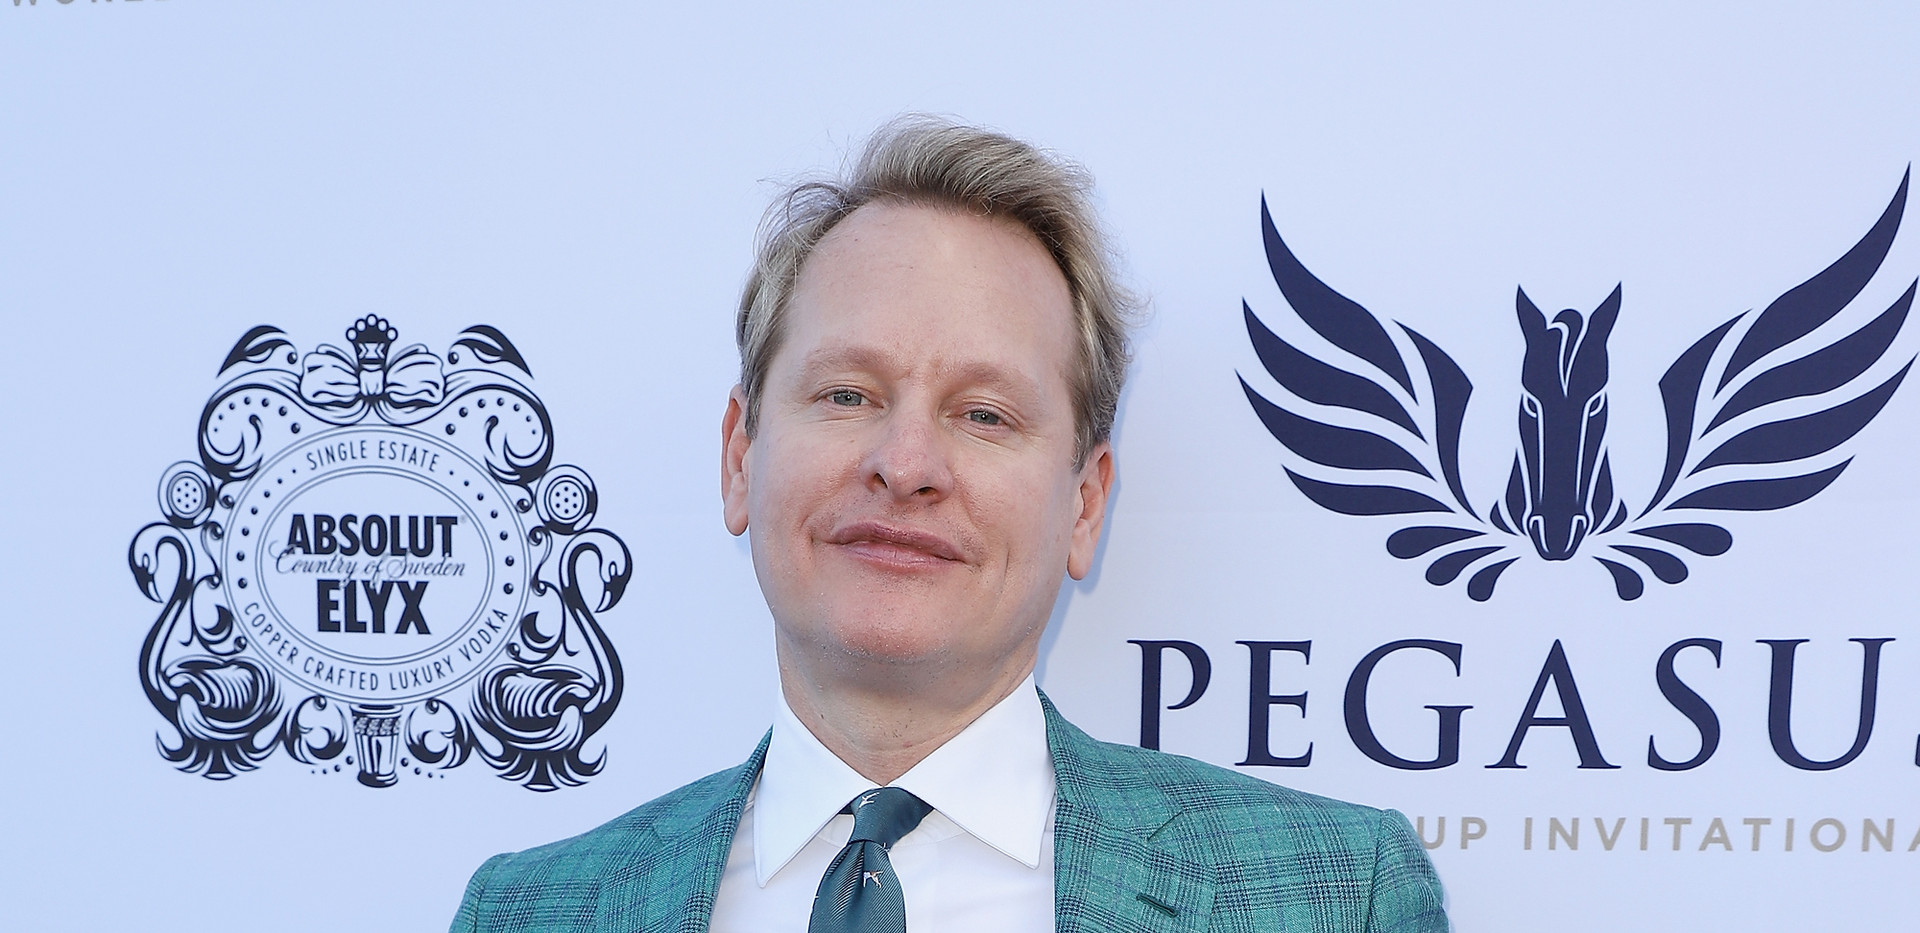 Carson Kressley at the $16 Million Pegas